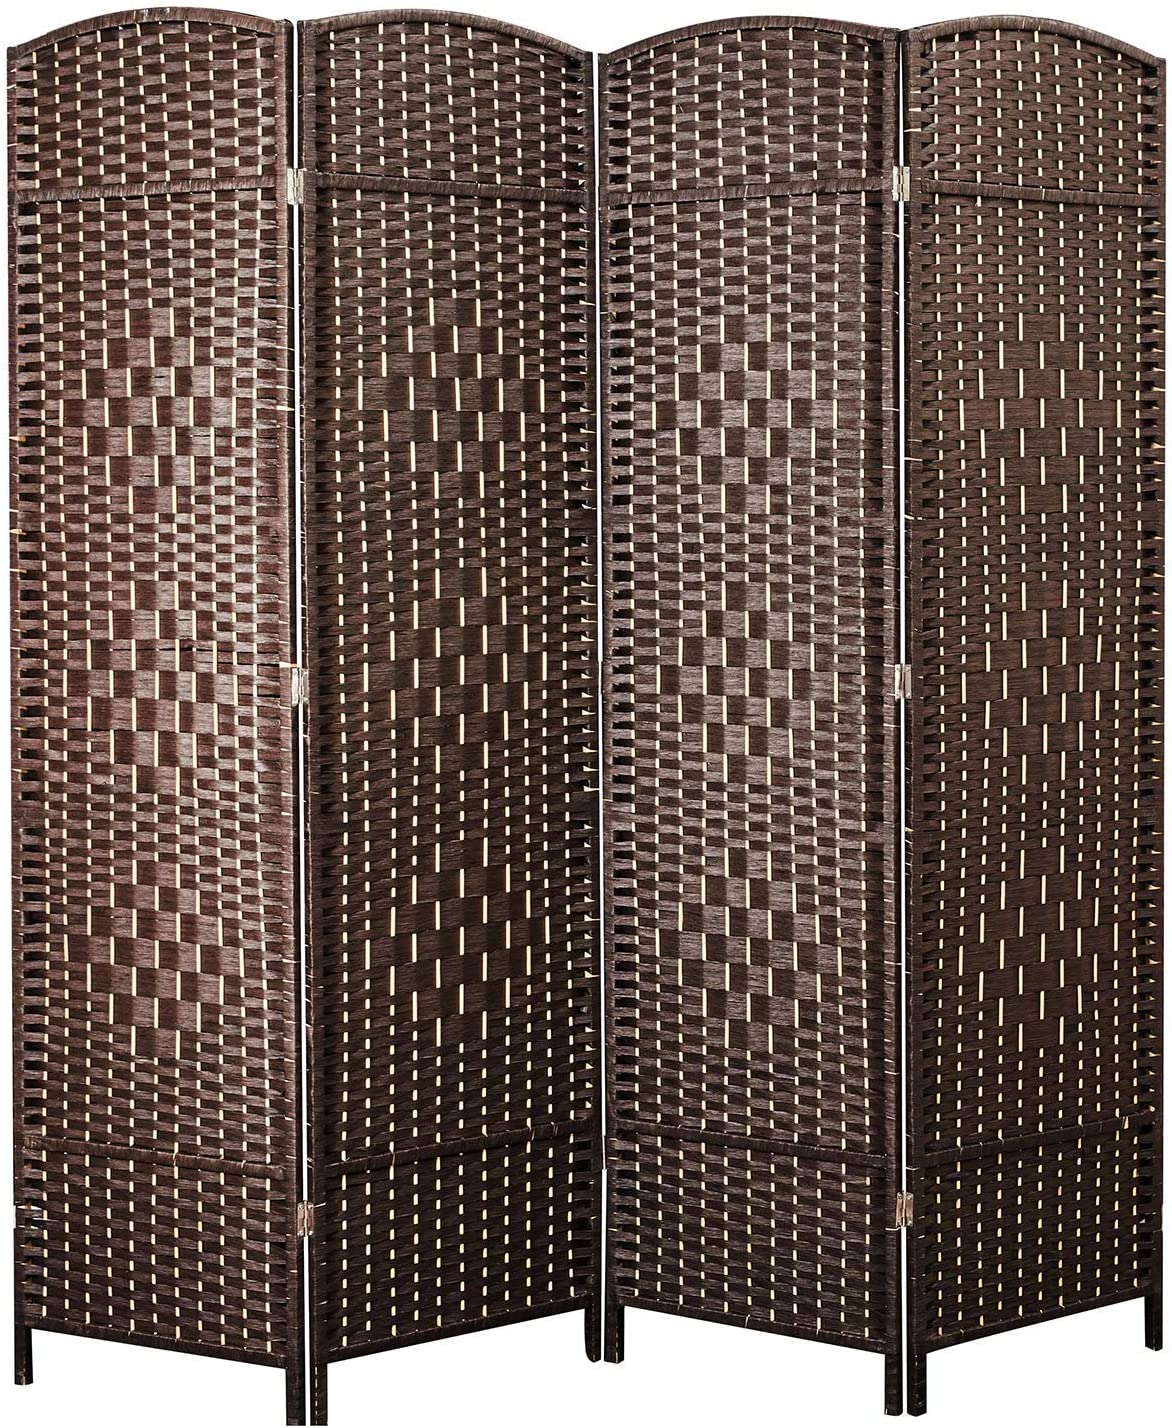 cocosica Weave Fiber Room Divider, Natural Fiber Folding Privacy Screen with Diamond Double-Weaved & 4 Panel Room Screen Divider Separator for Decorating Bedding, Dining, Study and Sitting Room